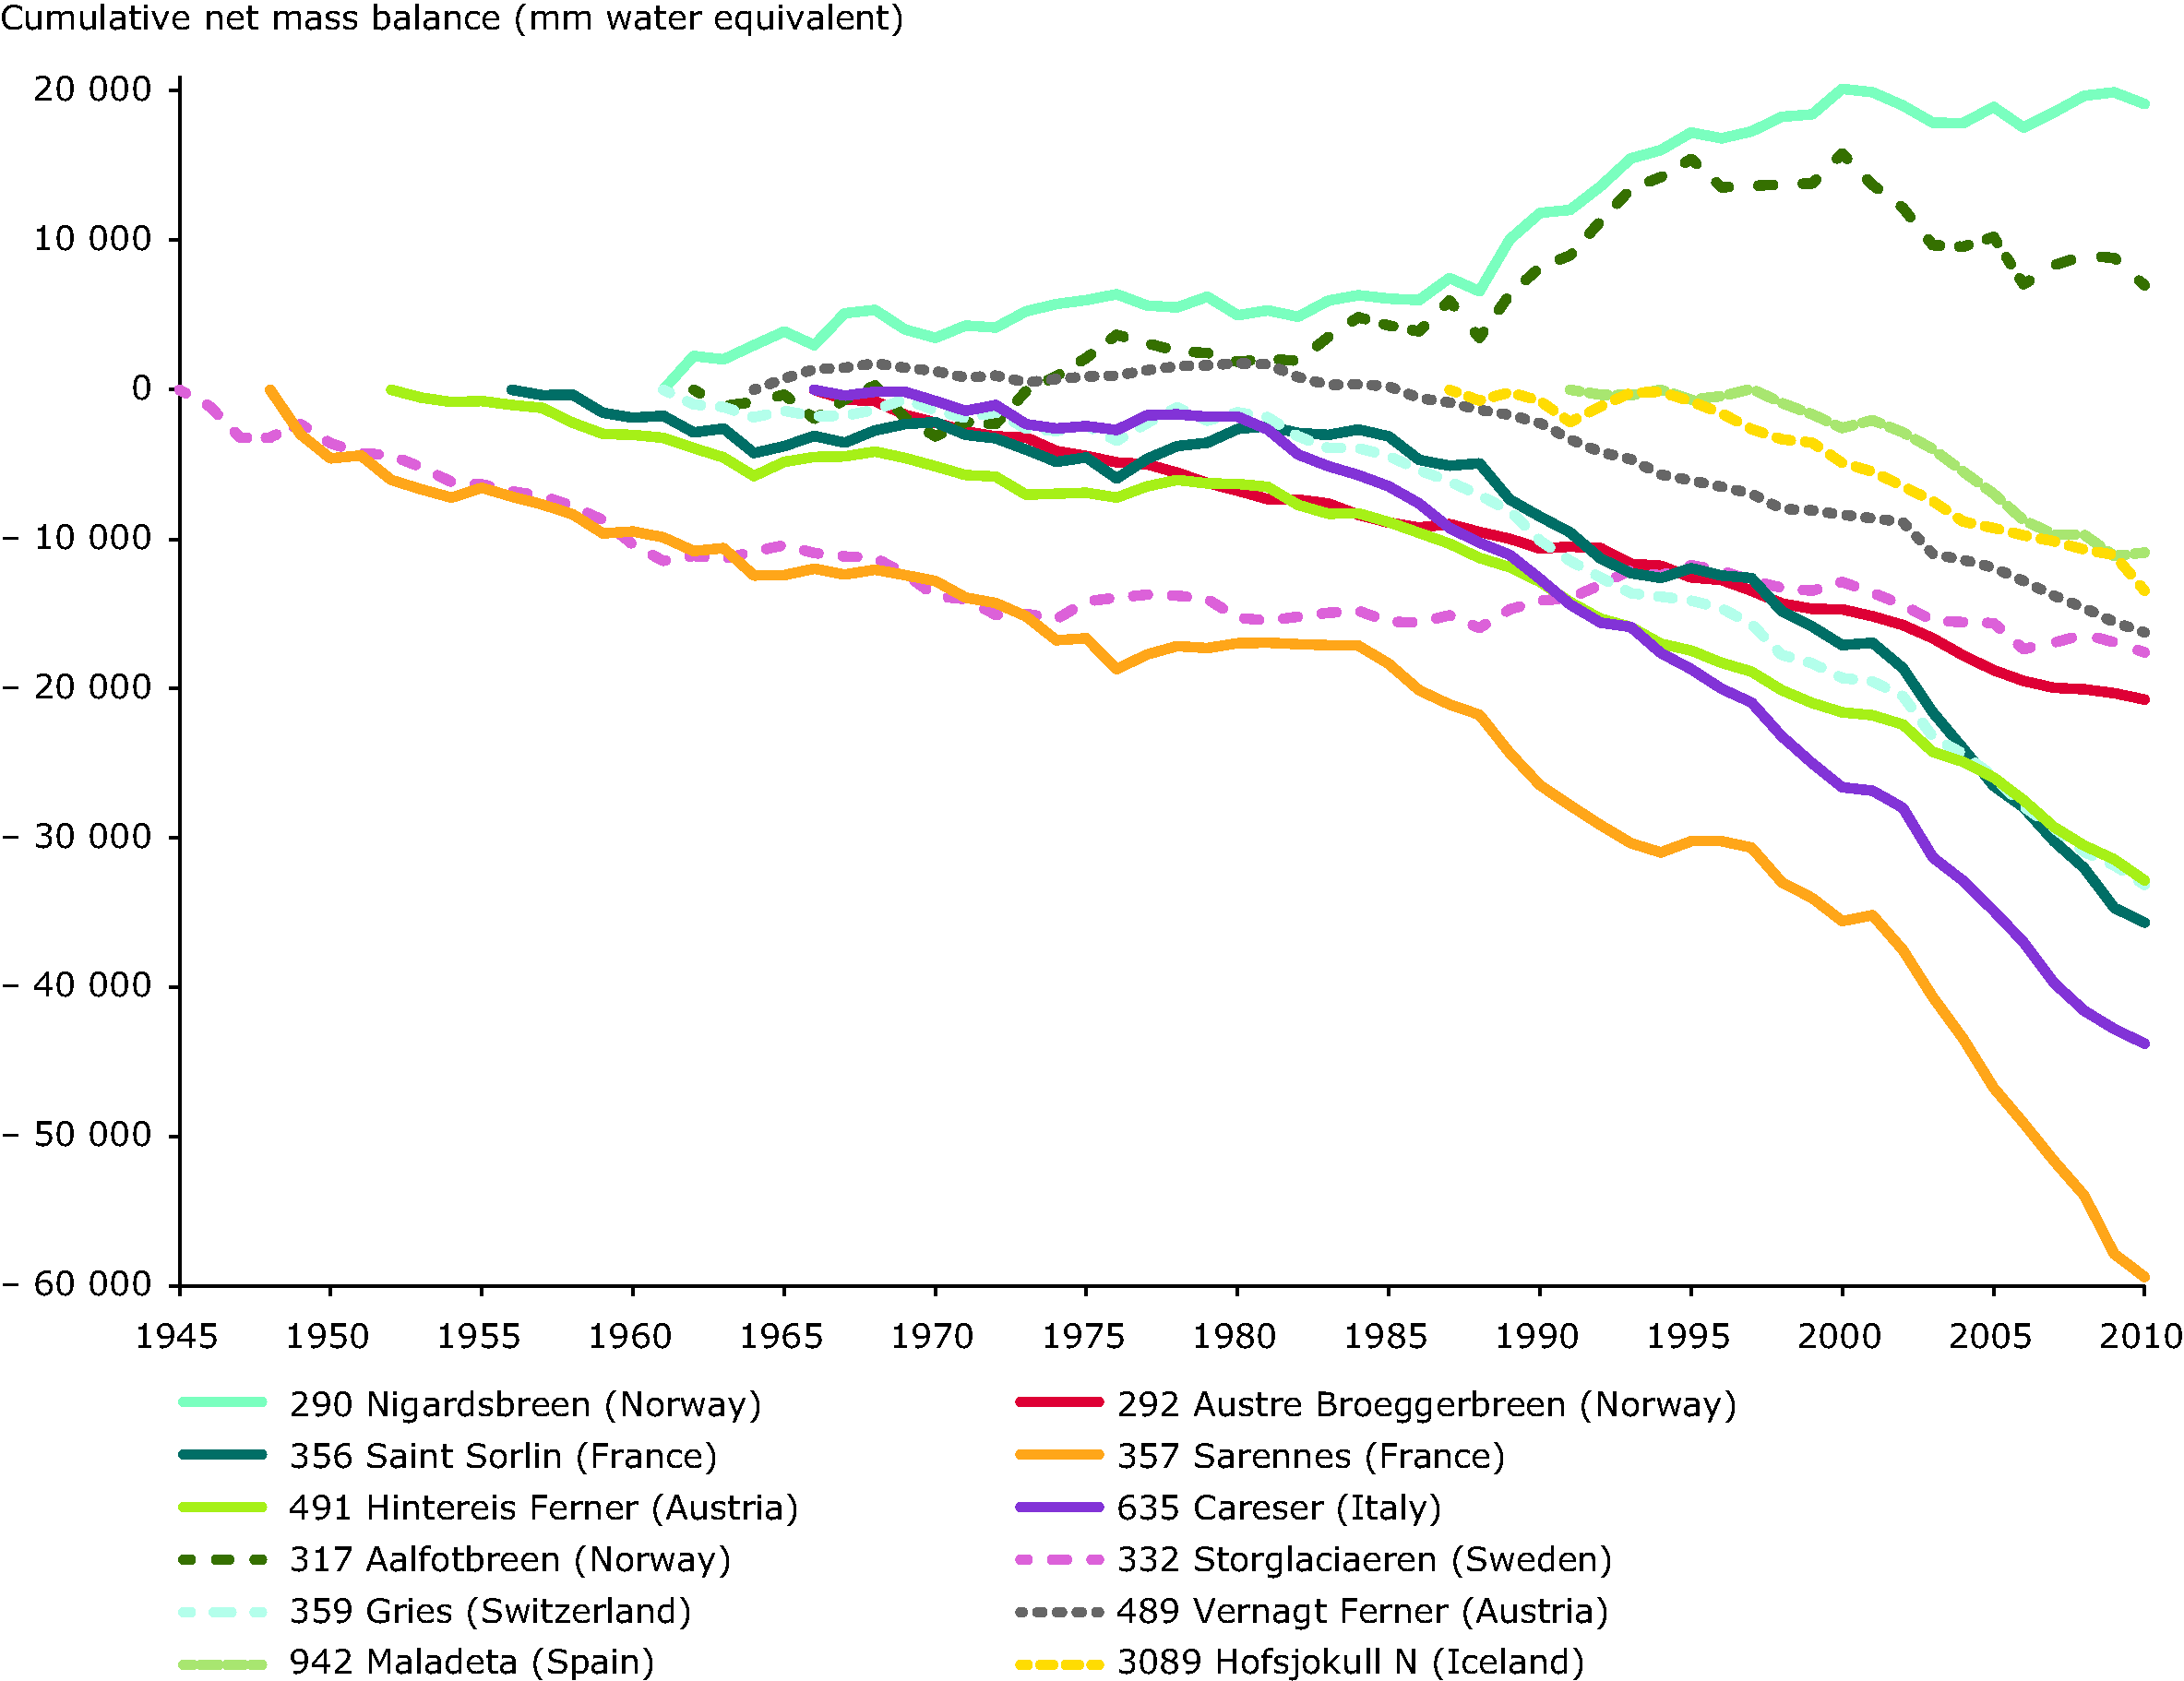 Cumulative specific net mass balance of European glaciers